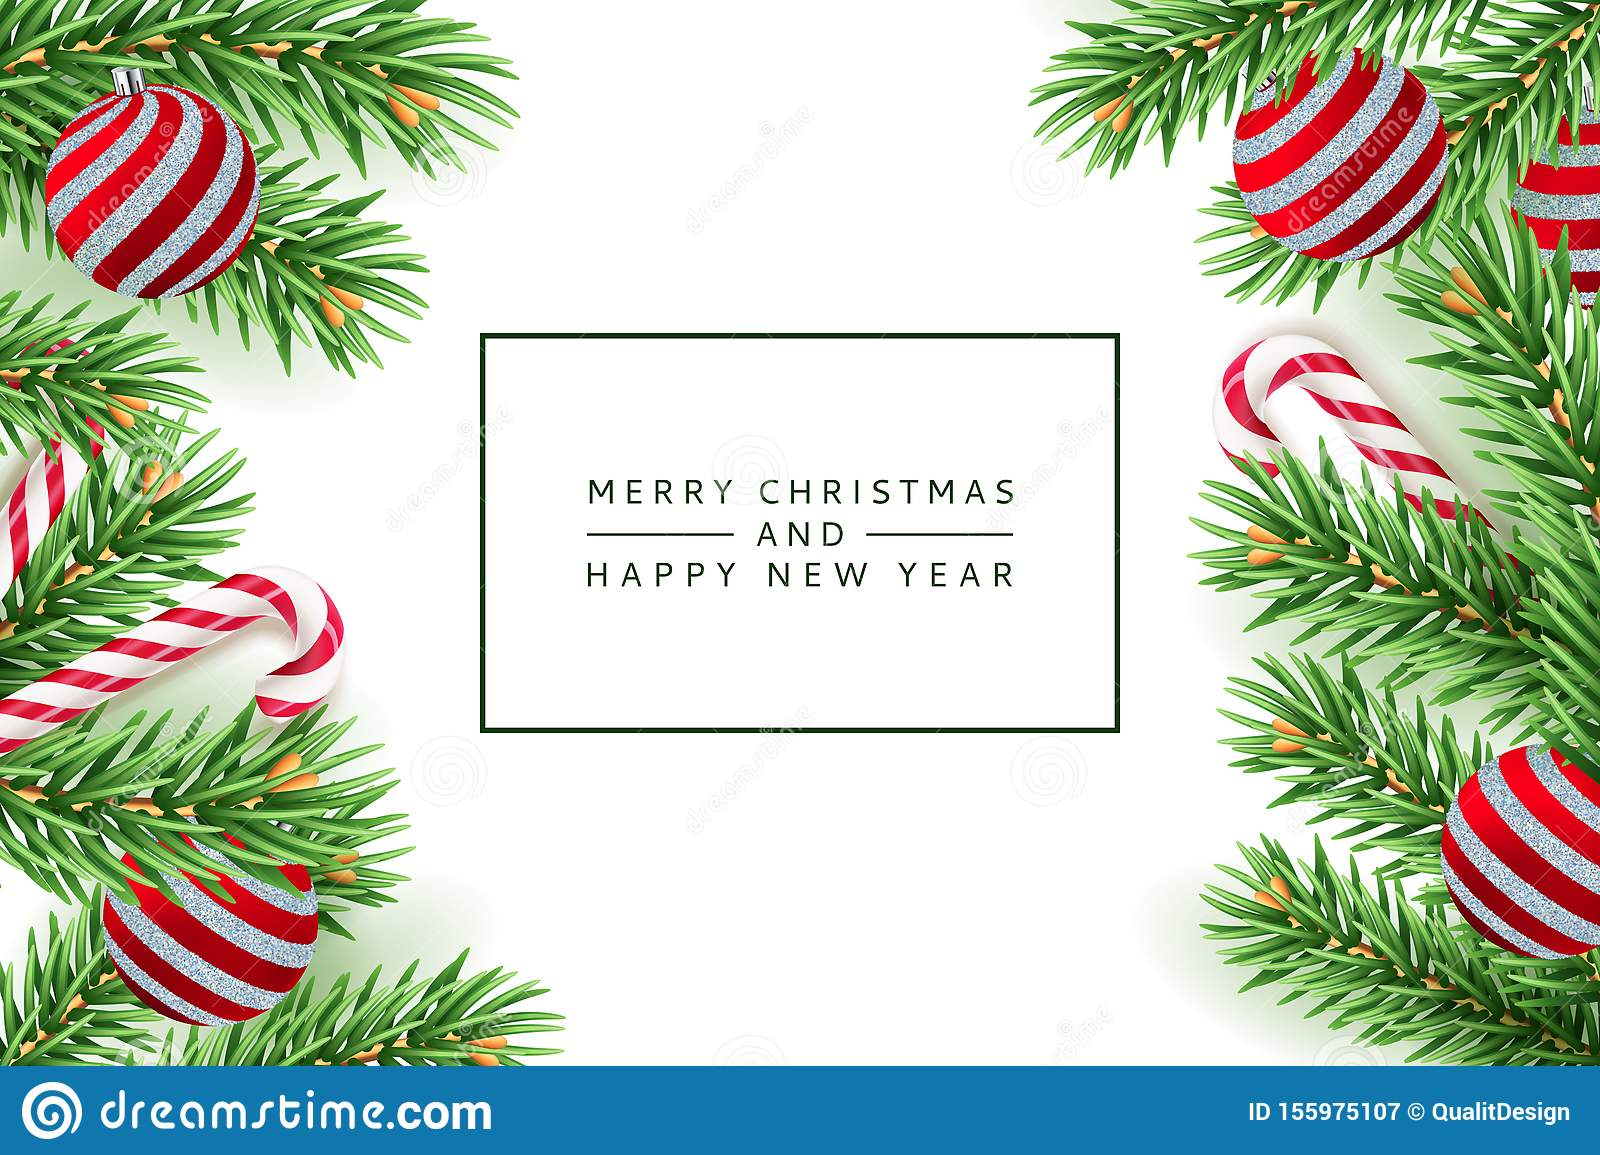 Merry Christmas, Happy New Year poster, banner. Vector 3d realistic illustration of pine branches, balls, striped candy